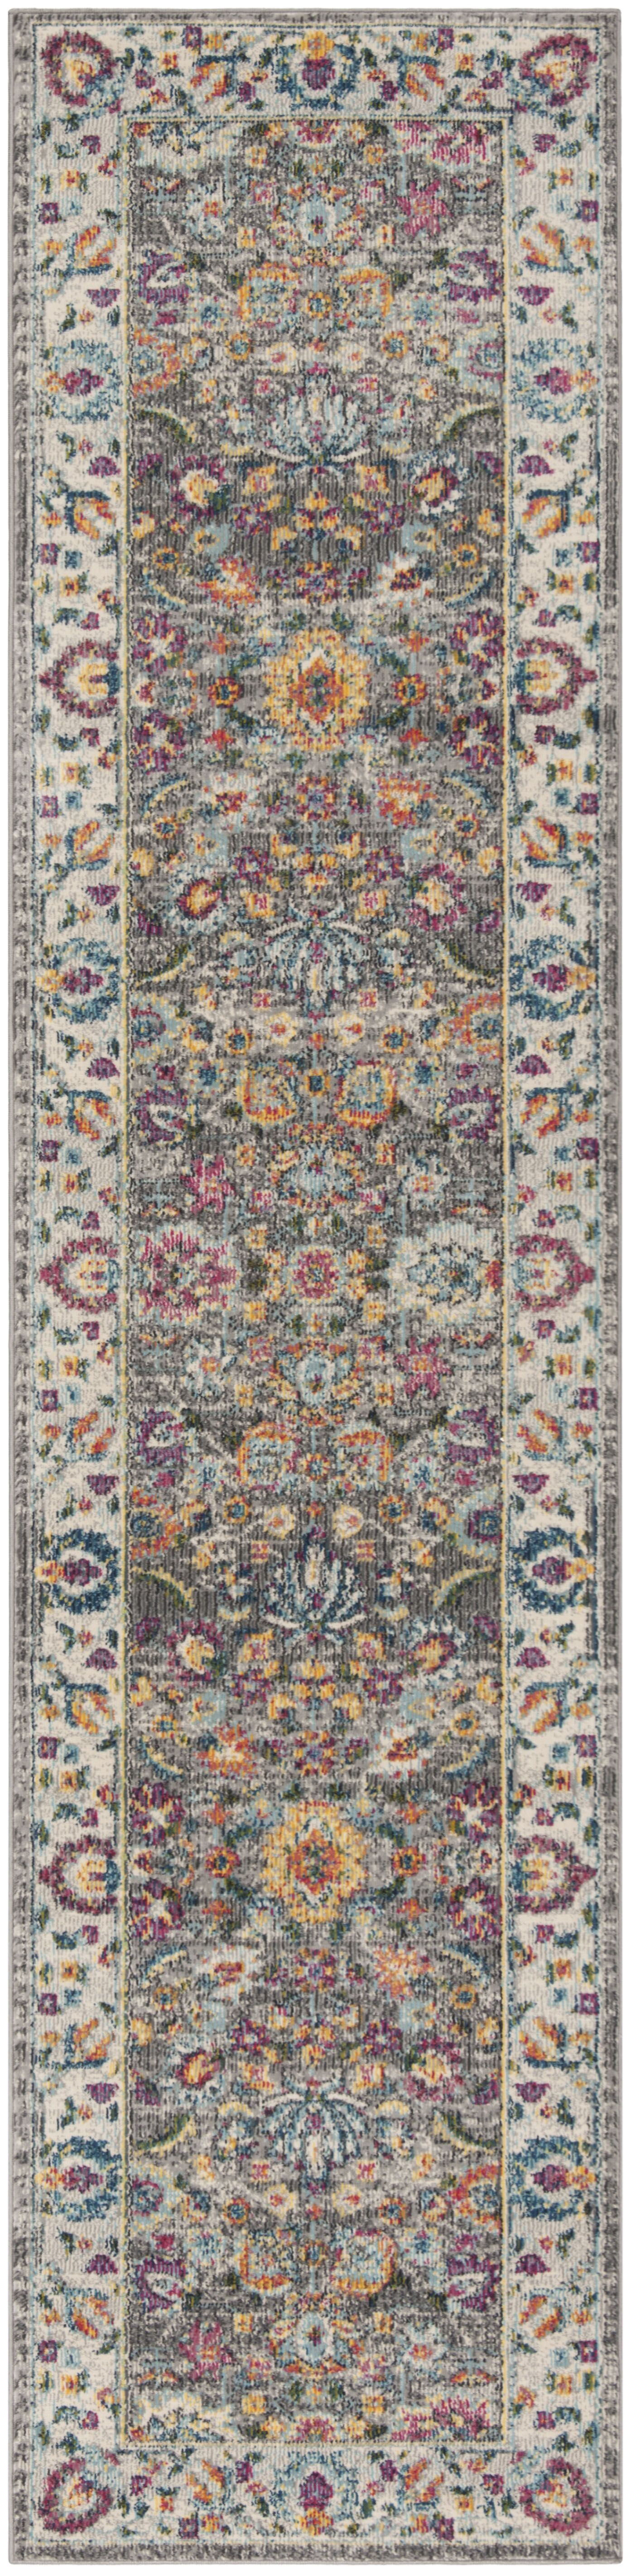 Doucet Gray/Pink Area Rug Rug Size: Runner 2' x 8'